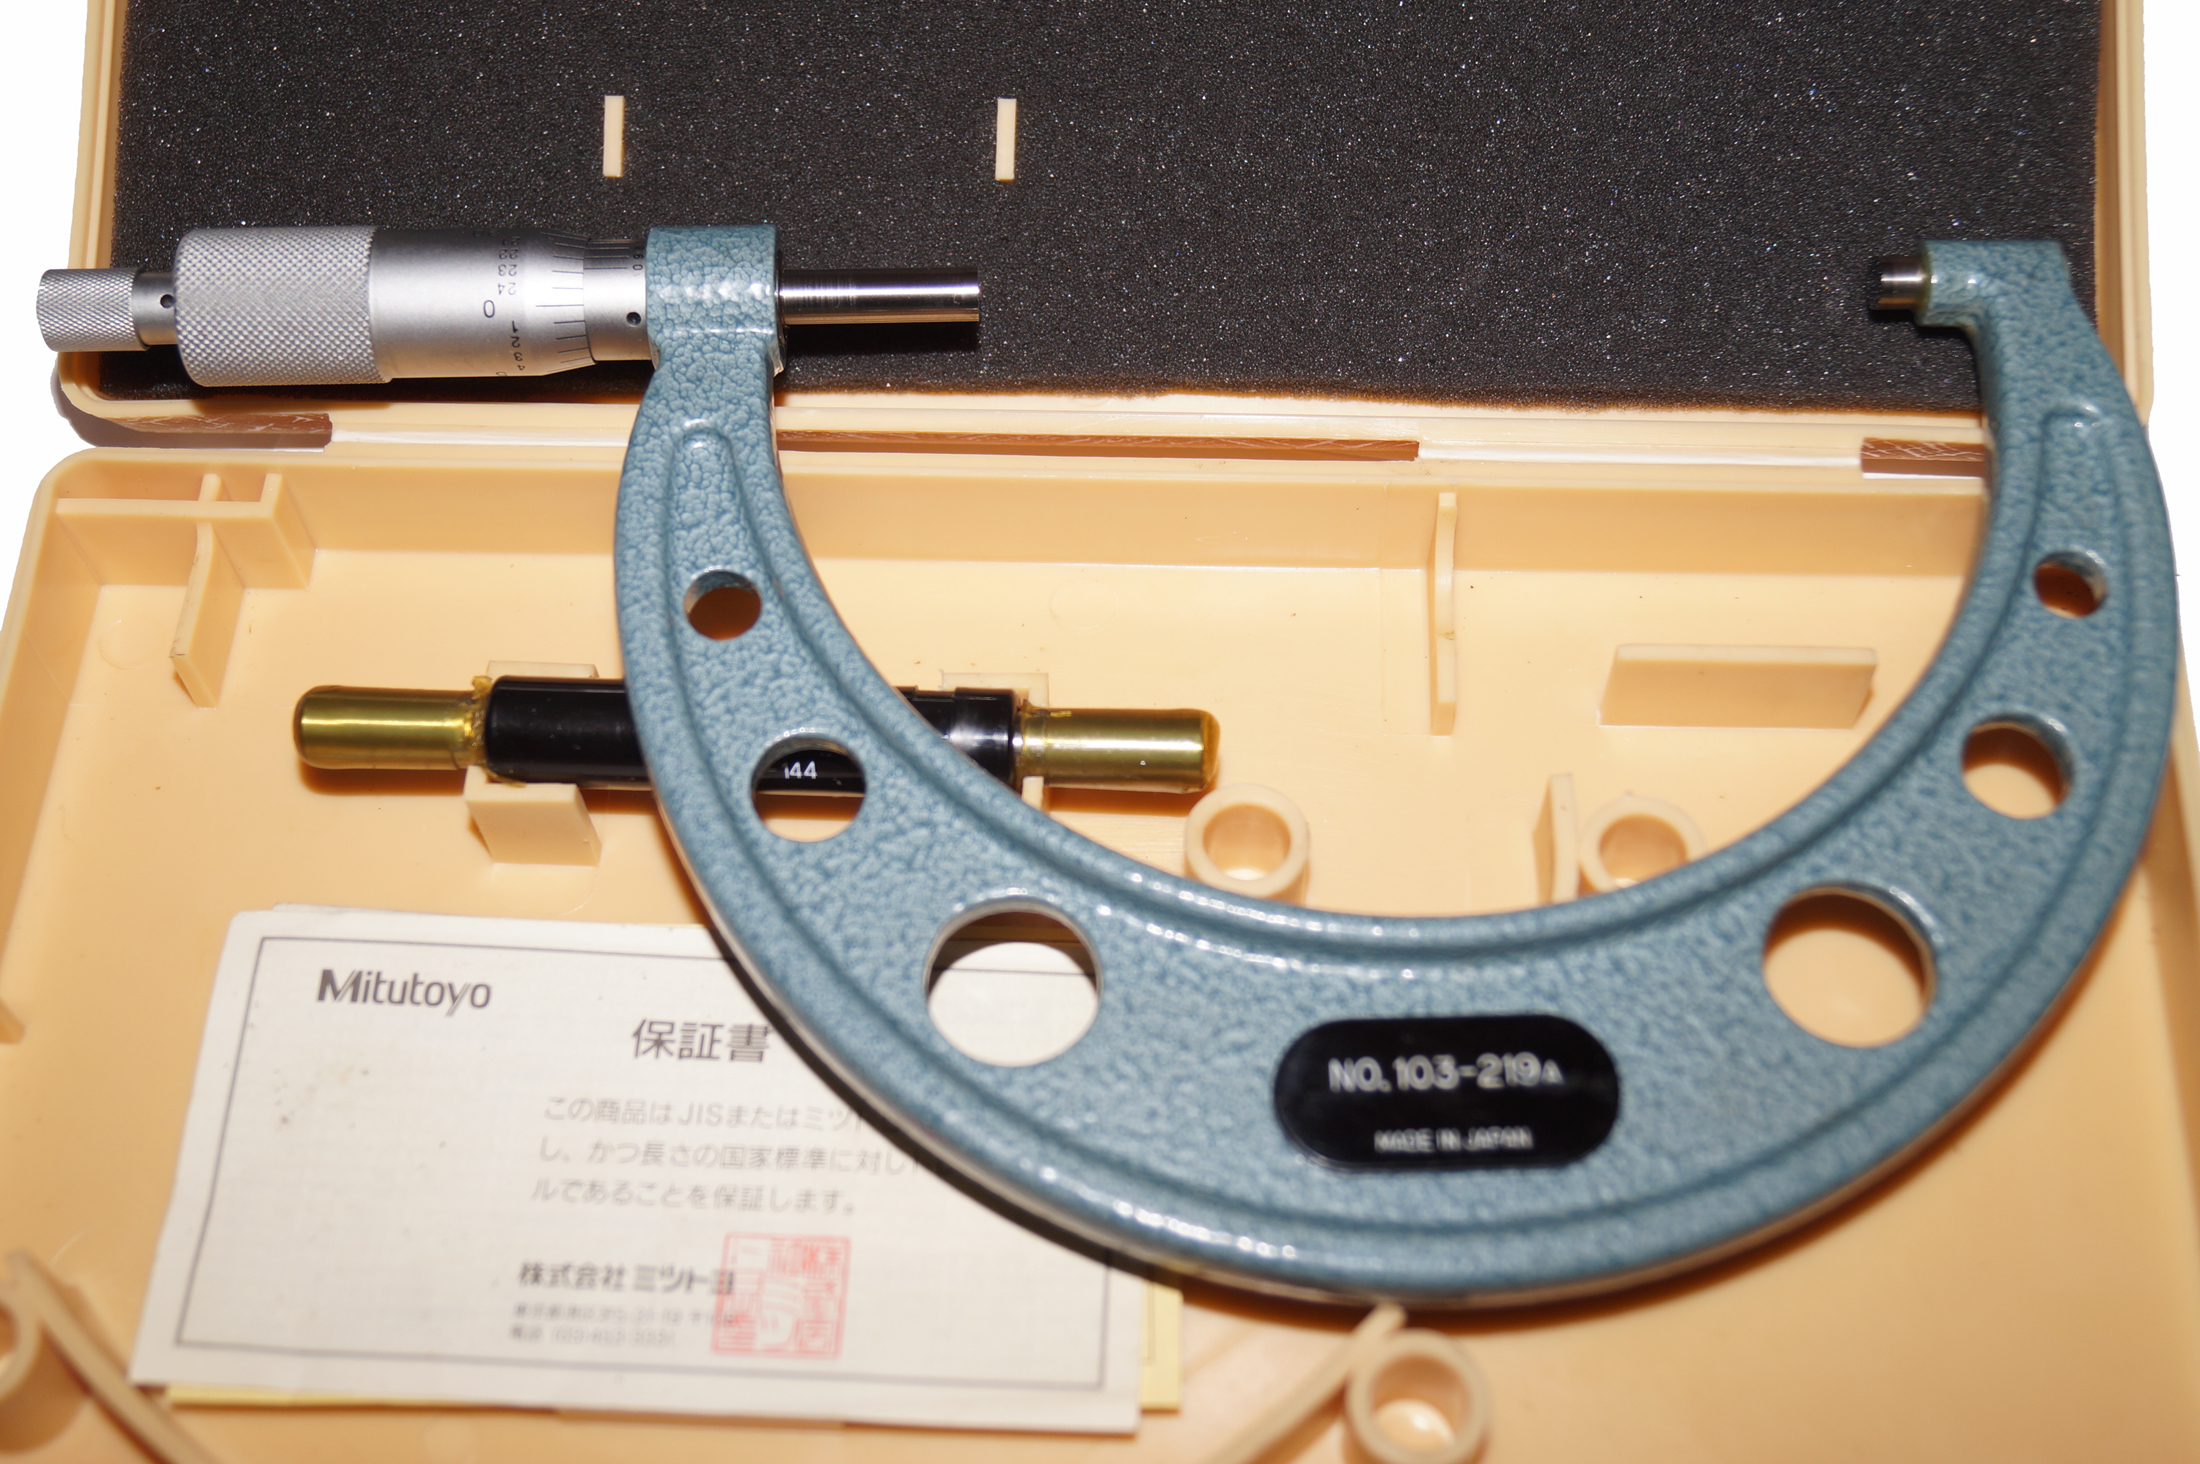 "Mitutoyo 4-5"" Micrometer with Standard, Wrench, Case Very Clean 103-219A"